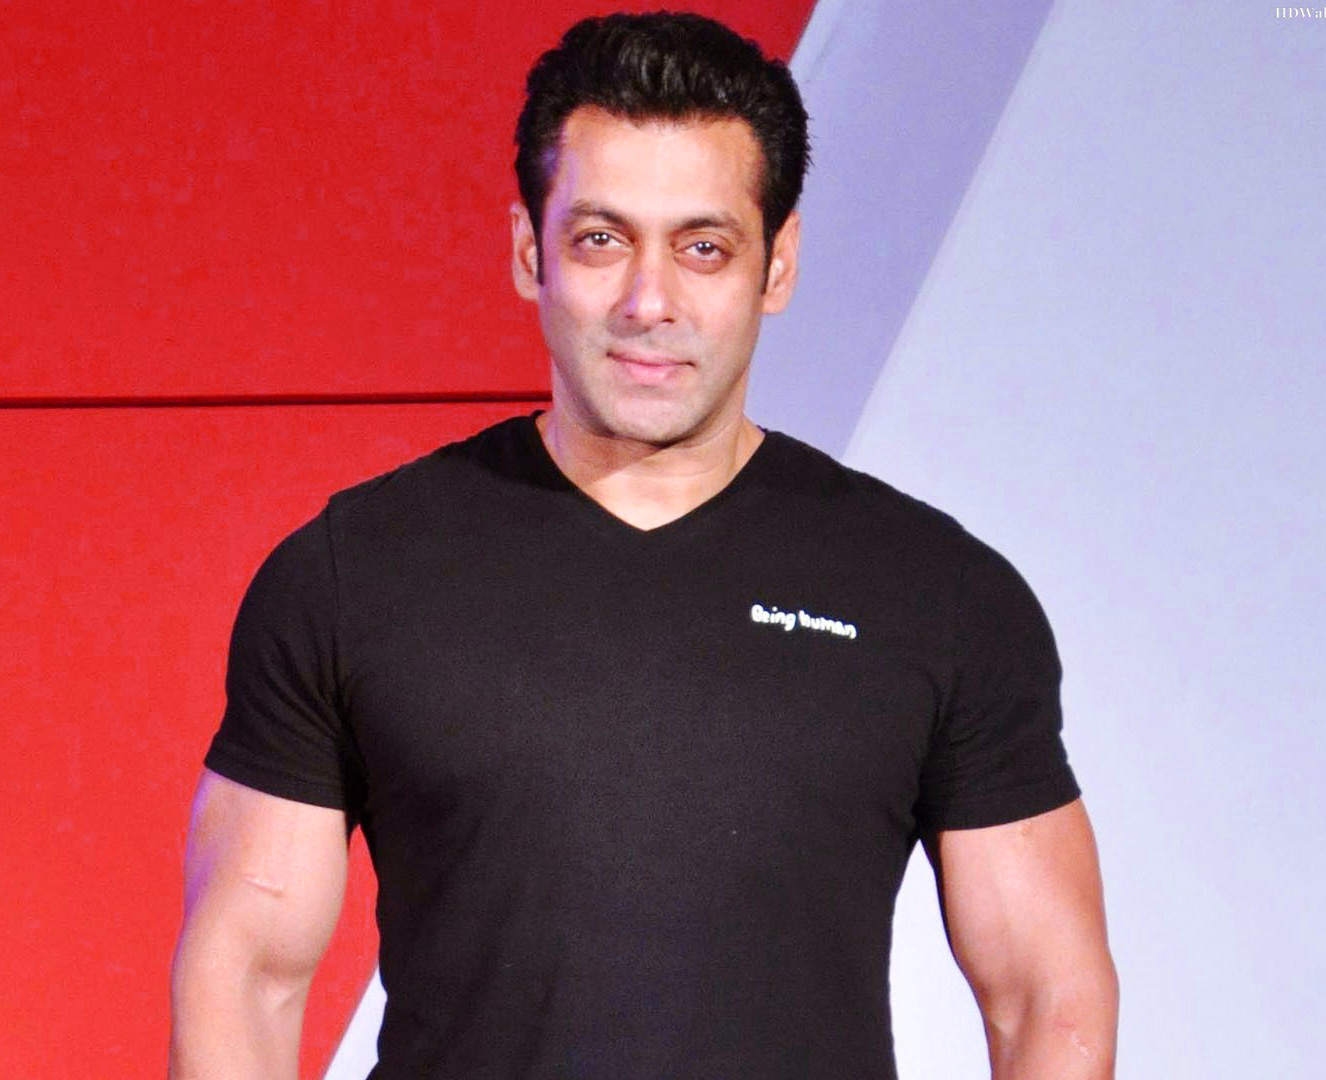 Salman Khan Photo 6